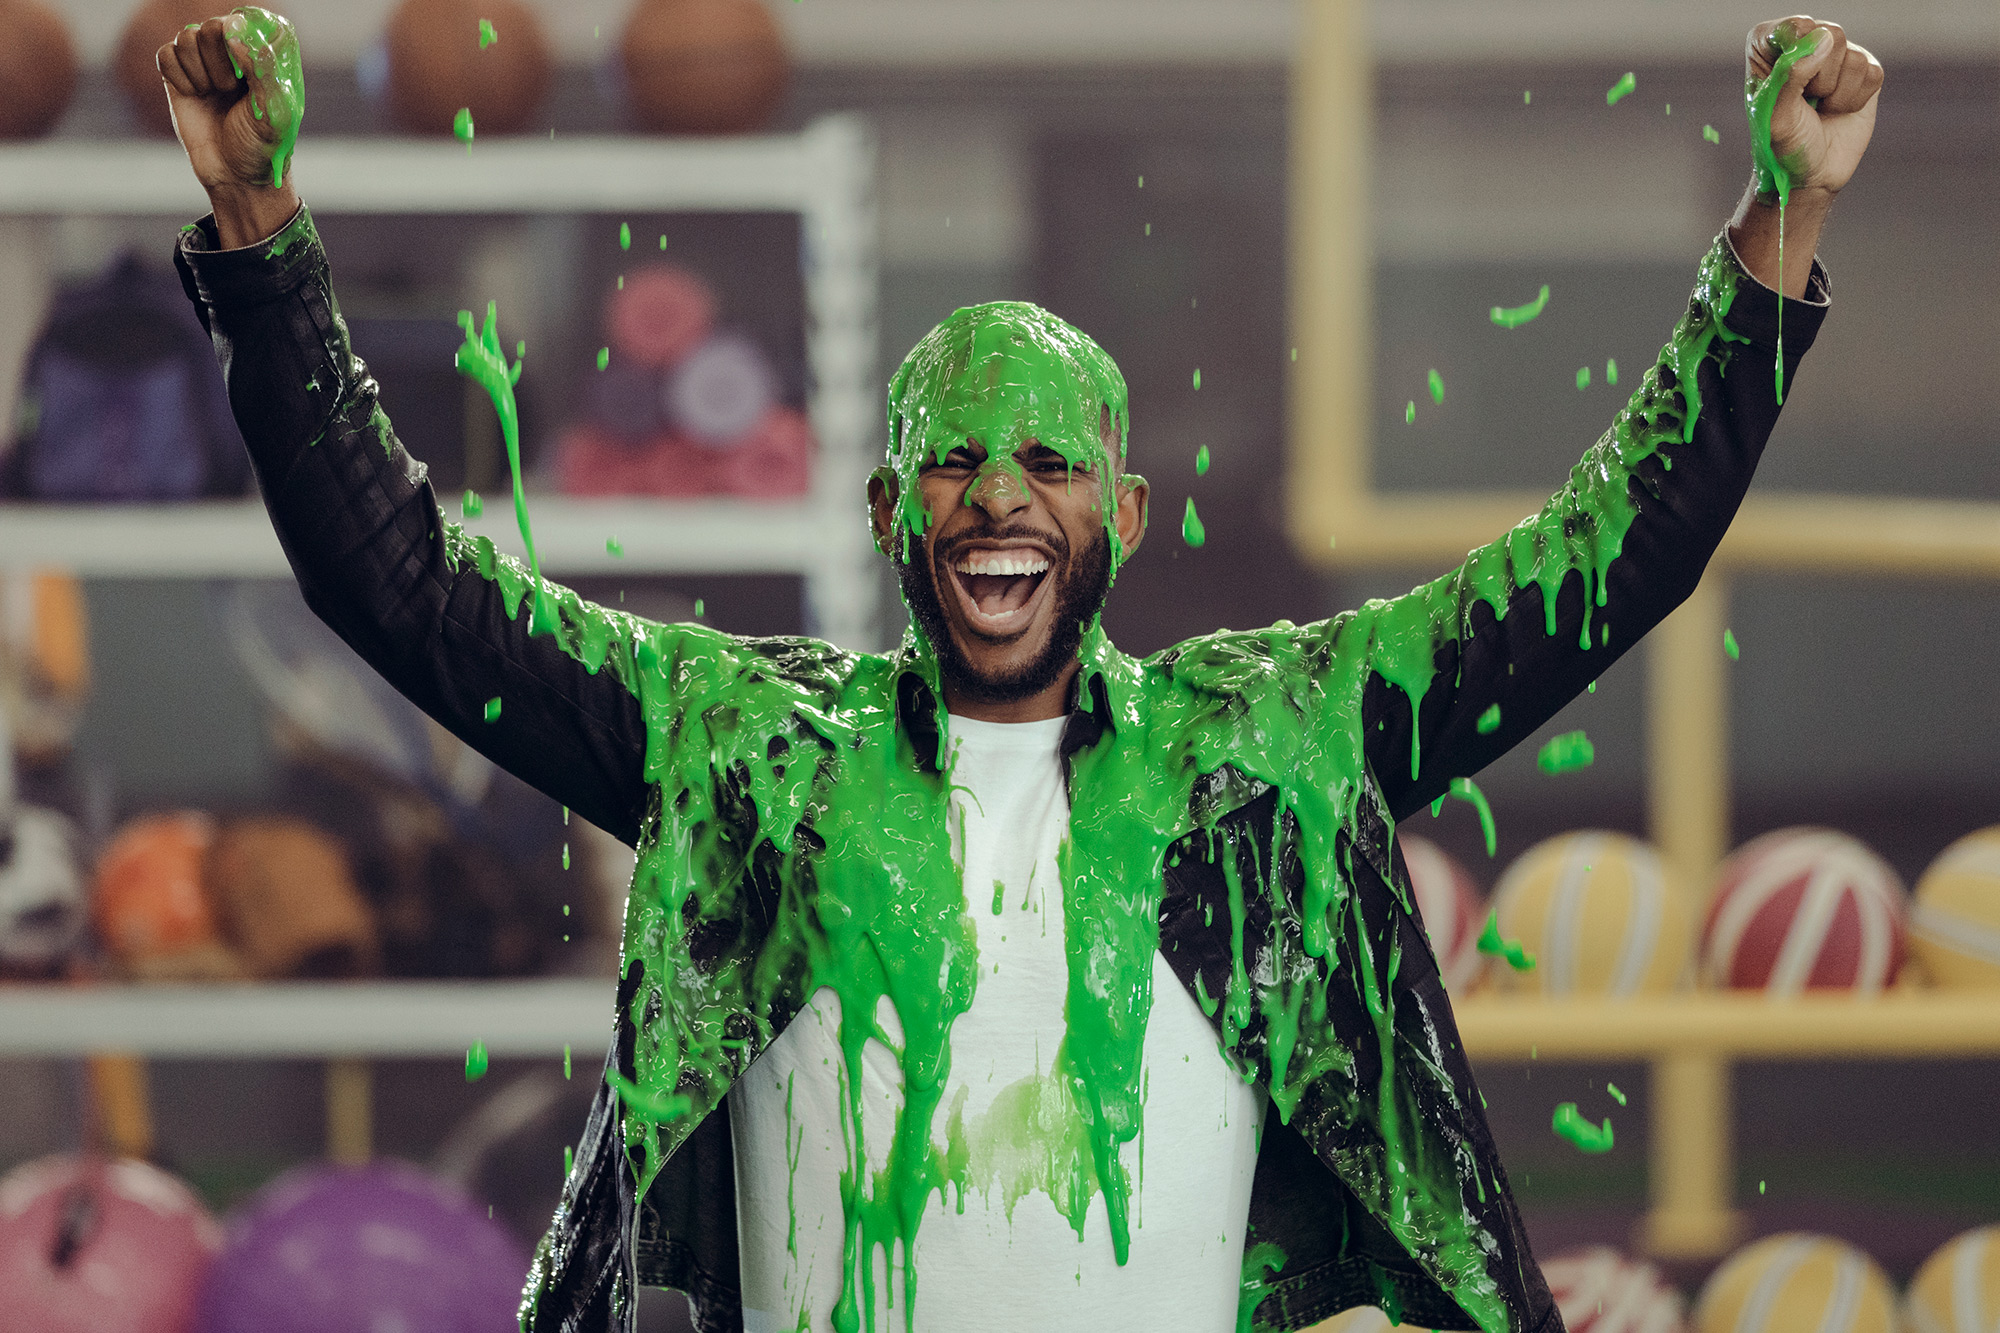 Chris Paul, NBA superstar is slimed during the filming of a commercial spot for Nickelodeon in Houston, Texas, photographed by commercial photographer, Todd Spoth.